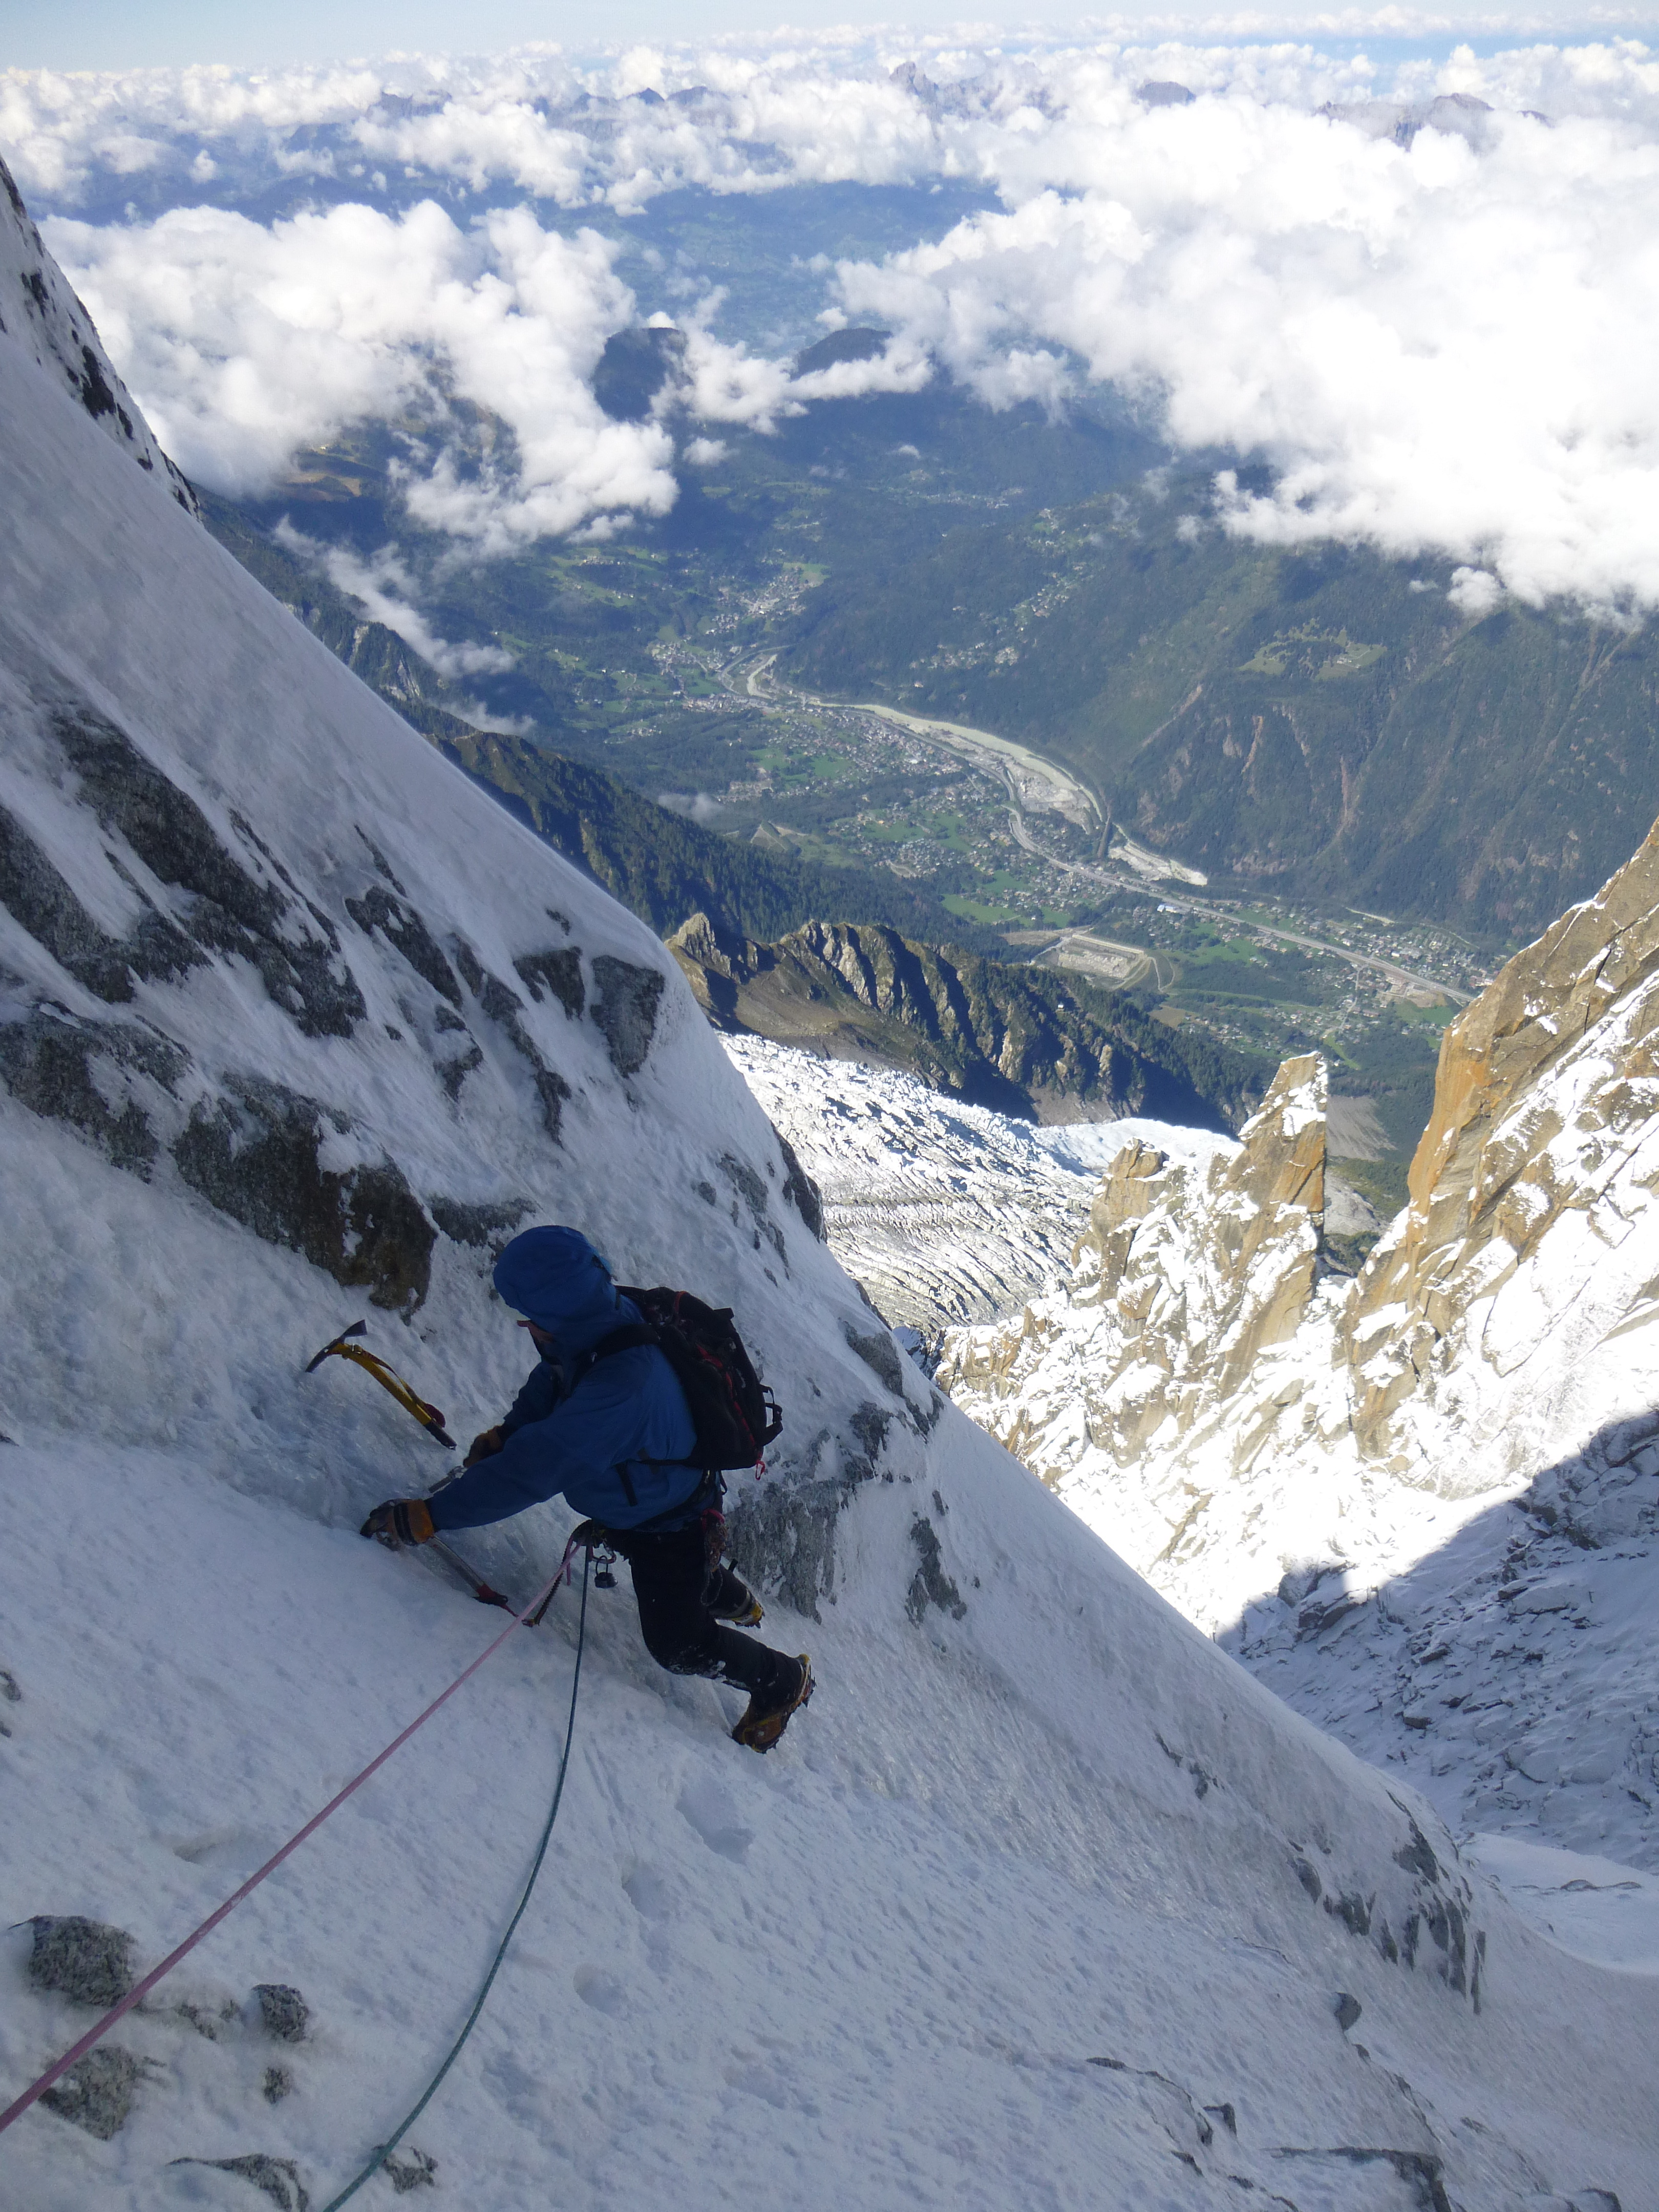 climbing the profit-perroux gully, high above the Chamonix valley